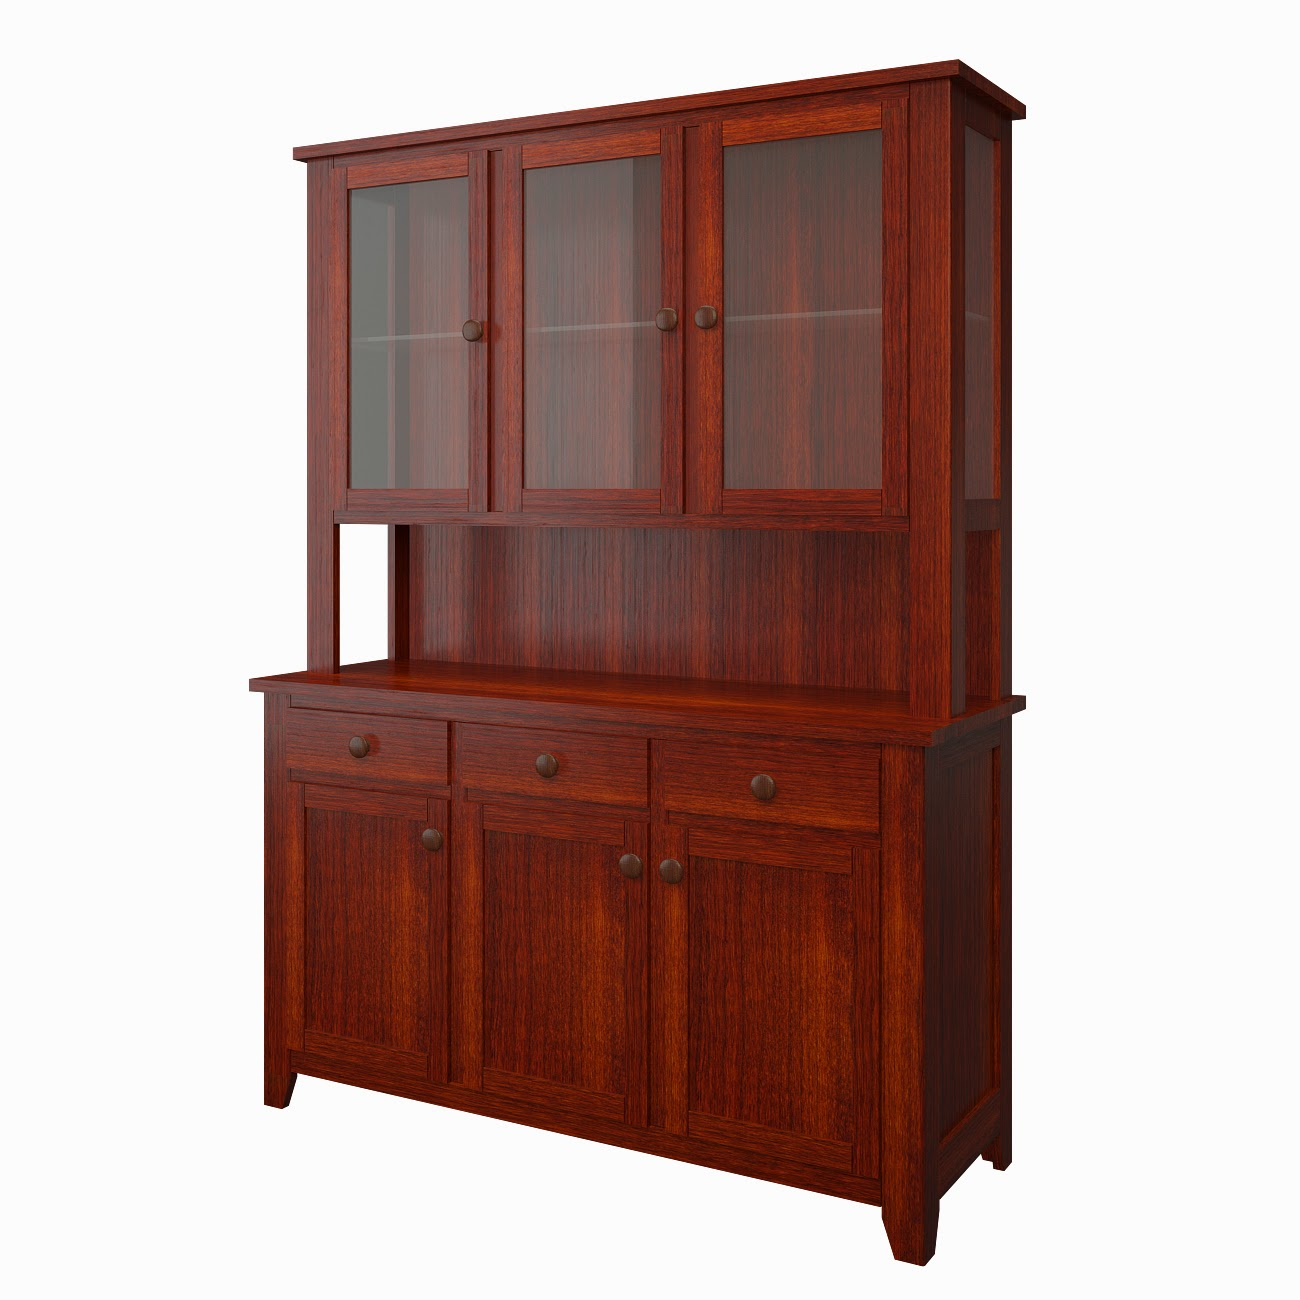 Shaker China Cabinets | China Cabinet in the Shaker Style